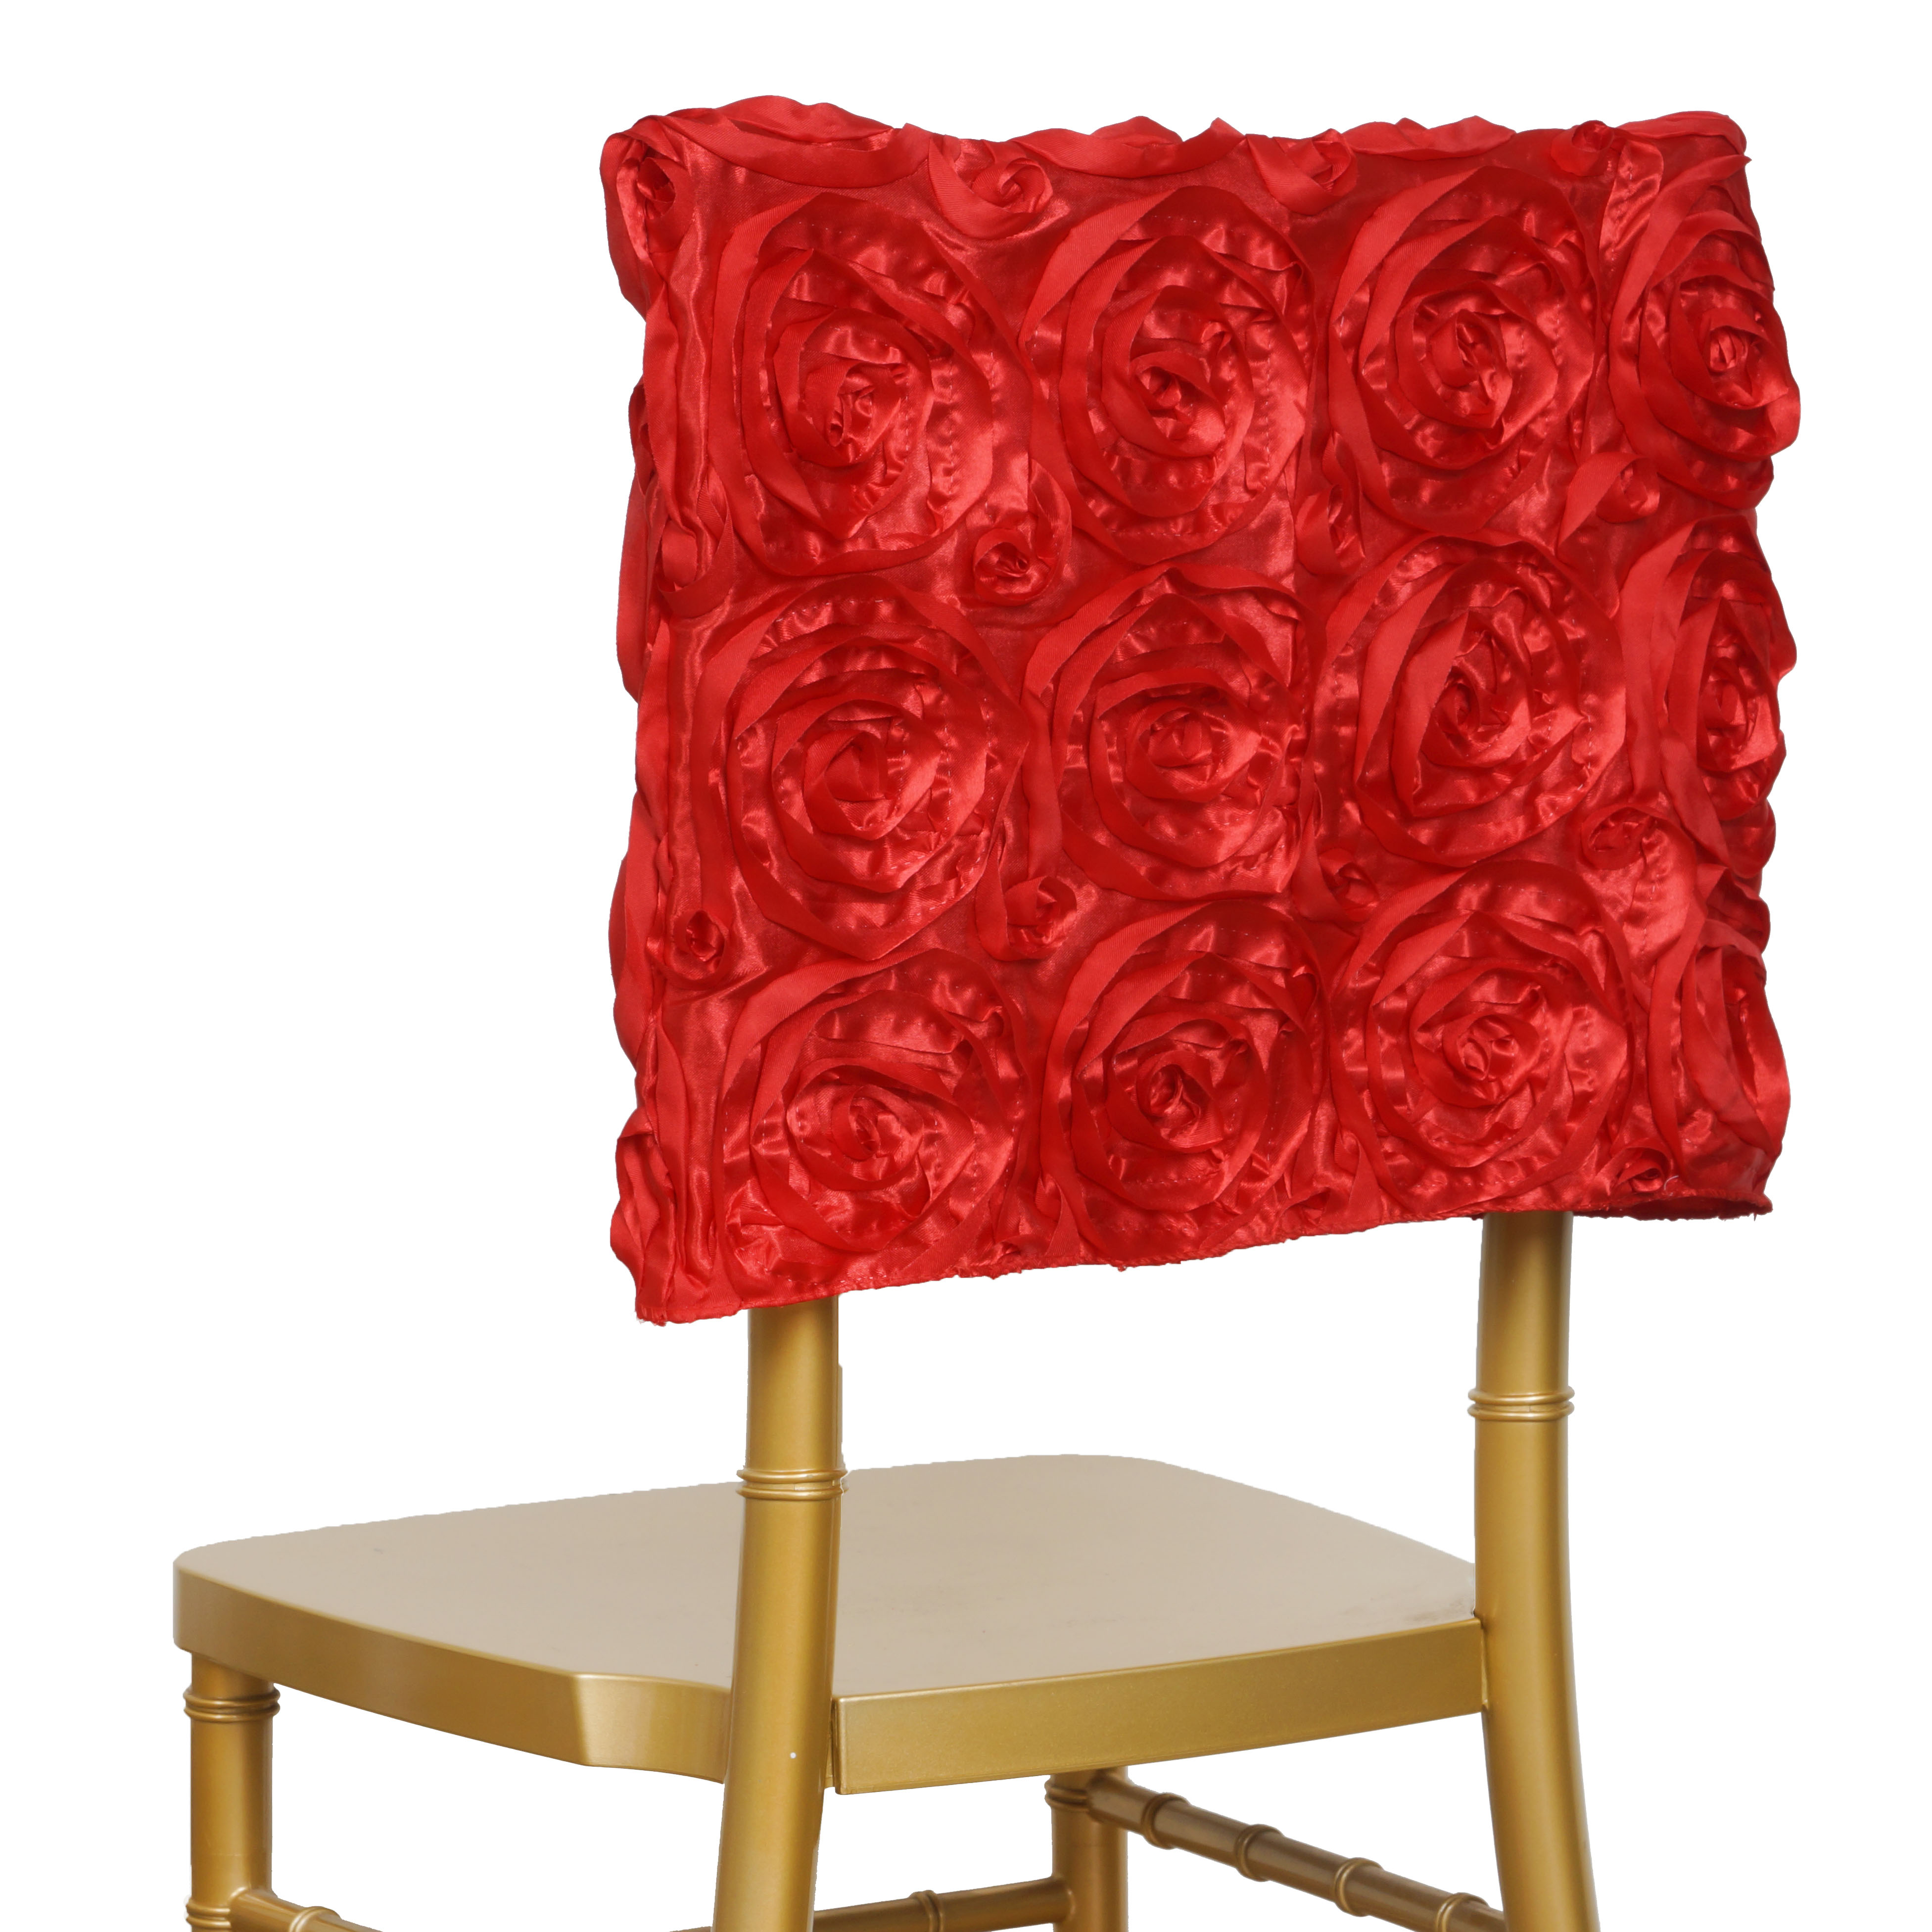 Outstanding Details About Red Chair Cover Square Top Cap Party Wedding Reception Ceremony Decorations Sale Theyellowbook Wood Chair Design Ideas Theyellowbookinfo